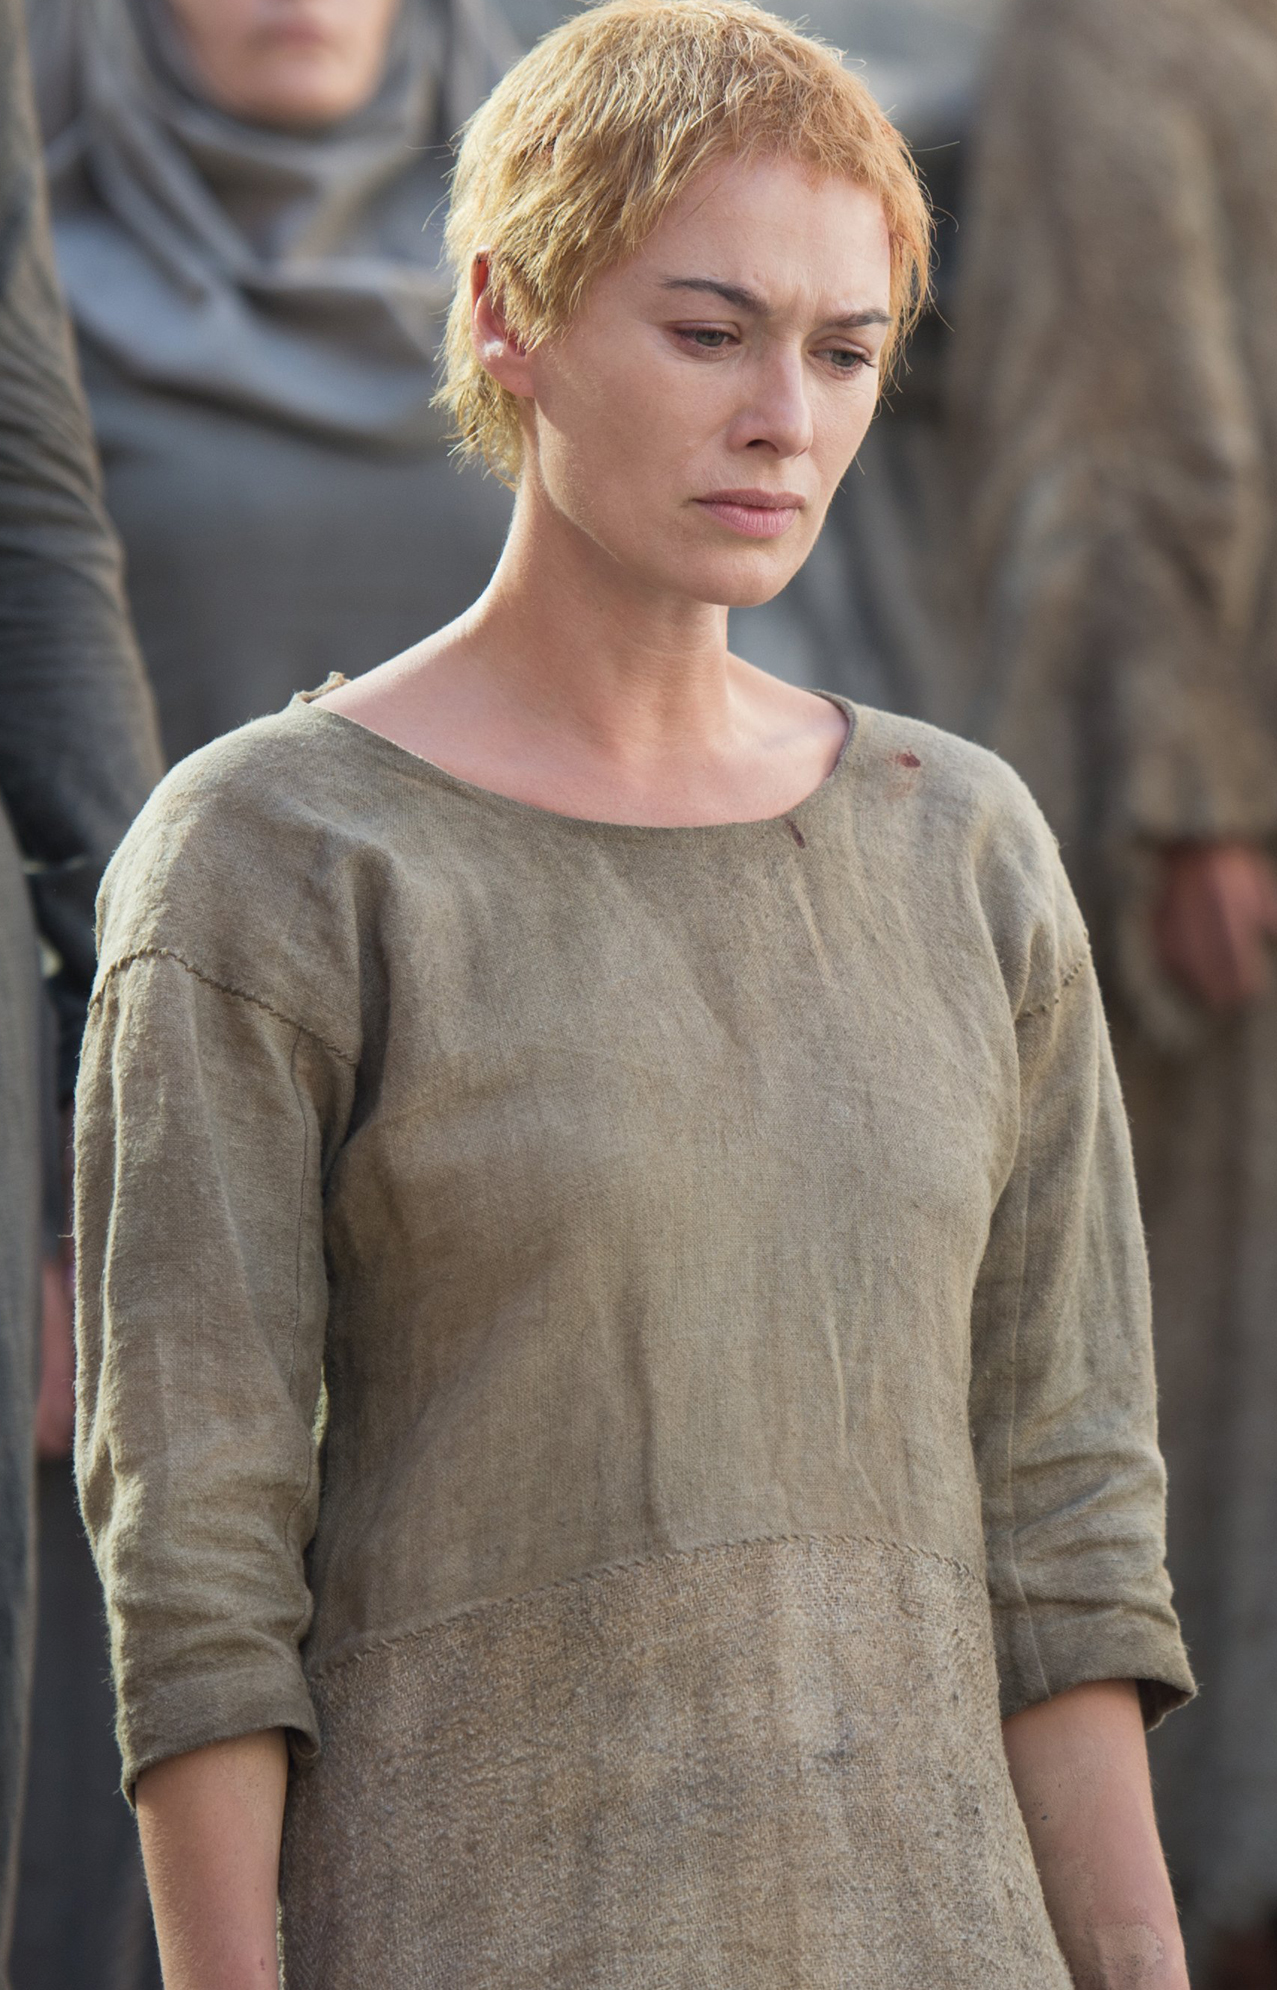 Category house mallister game of thrones wiki fandom - Image Cersei Lannister S05e10 Jpg Game Of Thrones Wiki Fandom Powered By Wikia